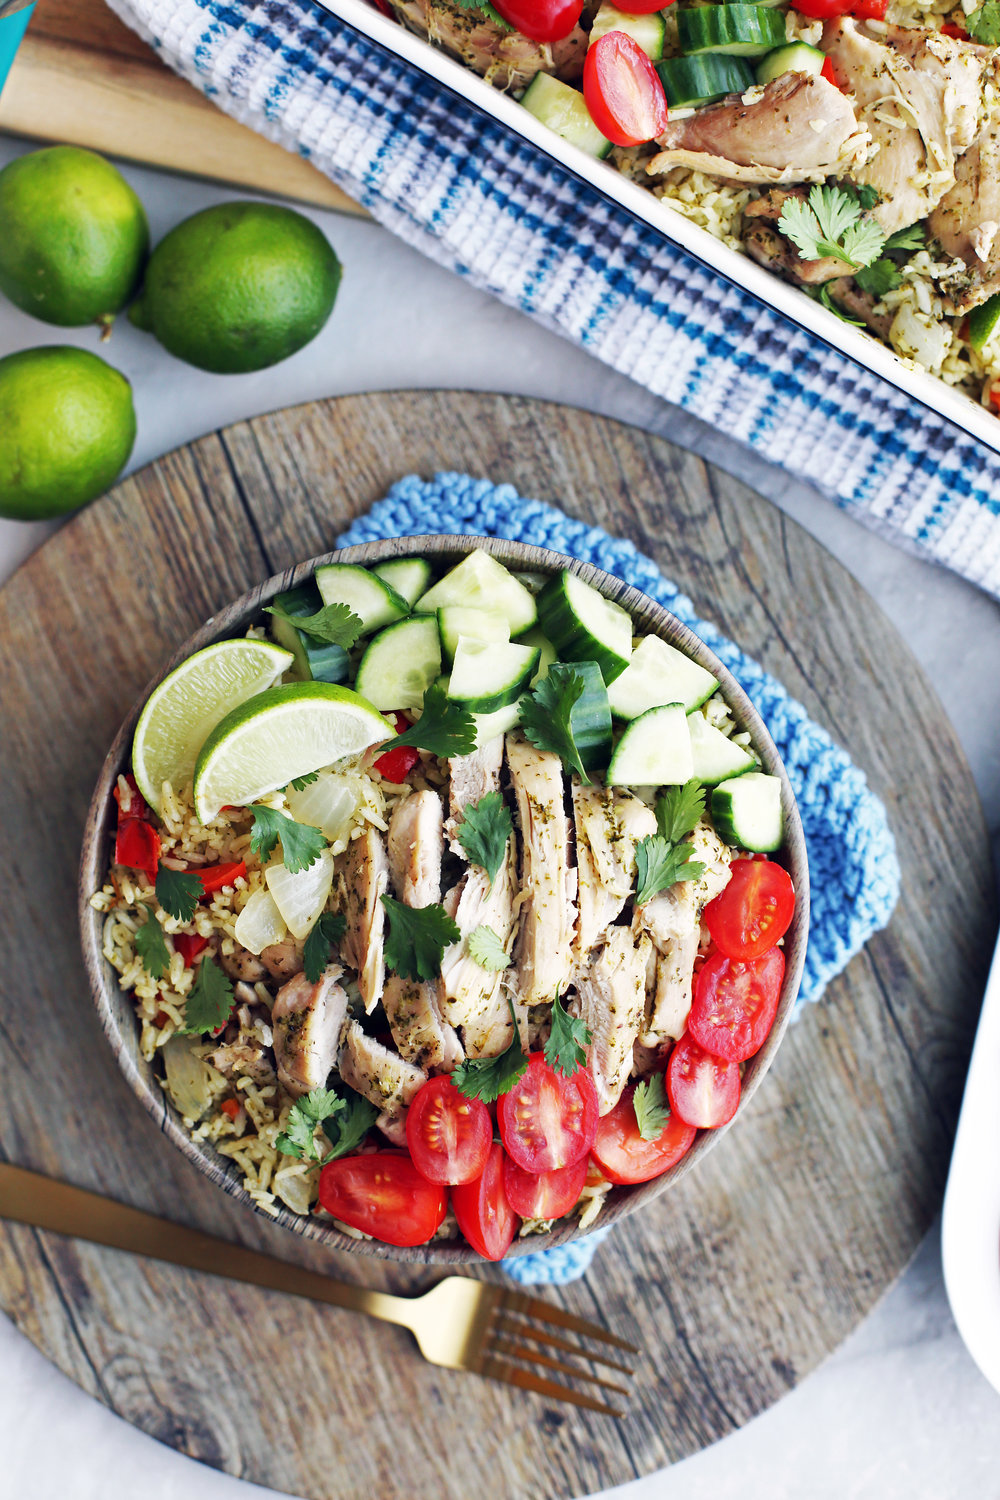 Instant Pot Cilantro Lime Chicken and Rice with tomatoes, cucumbers, and lime wedges in a wooden bowl.